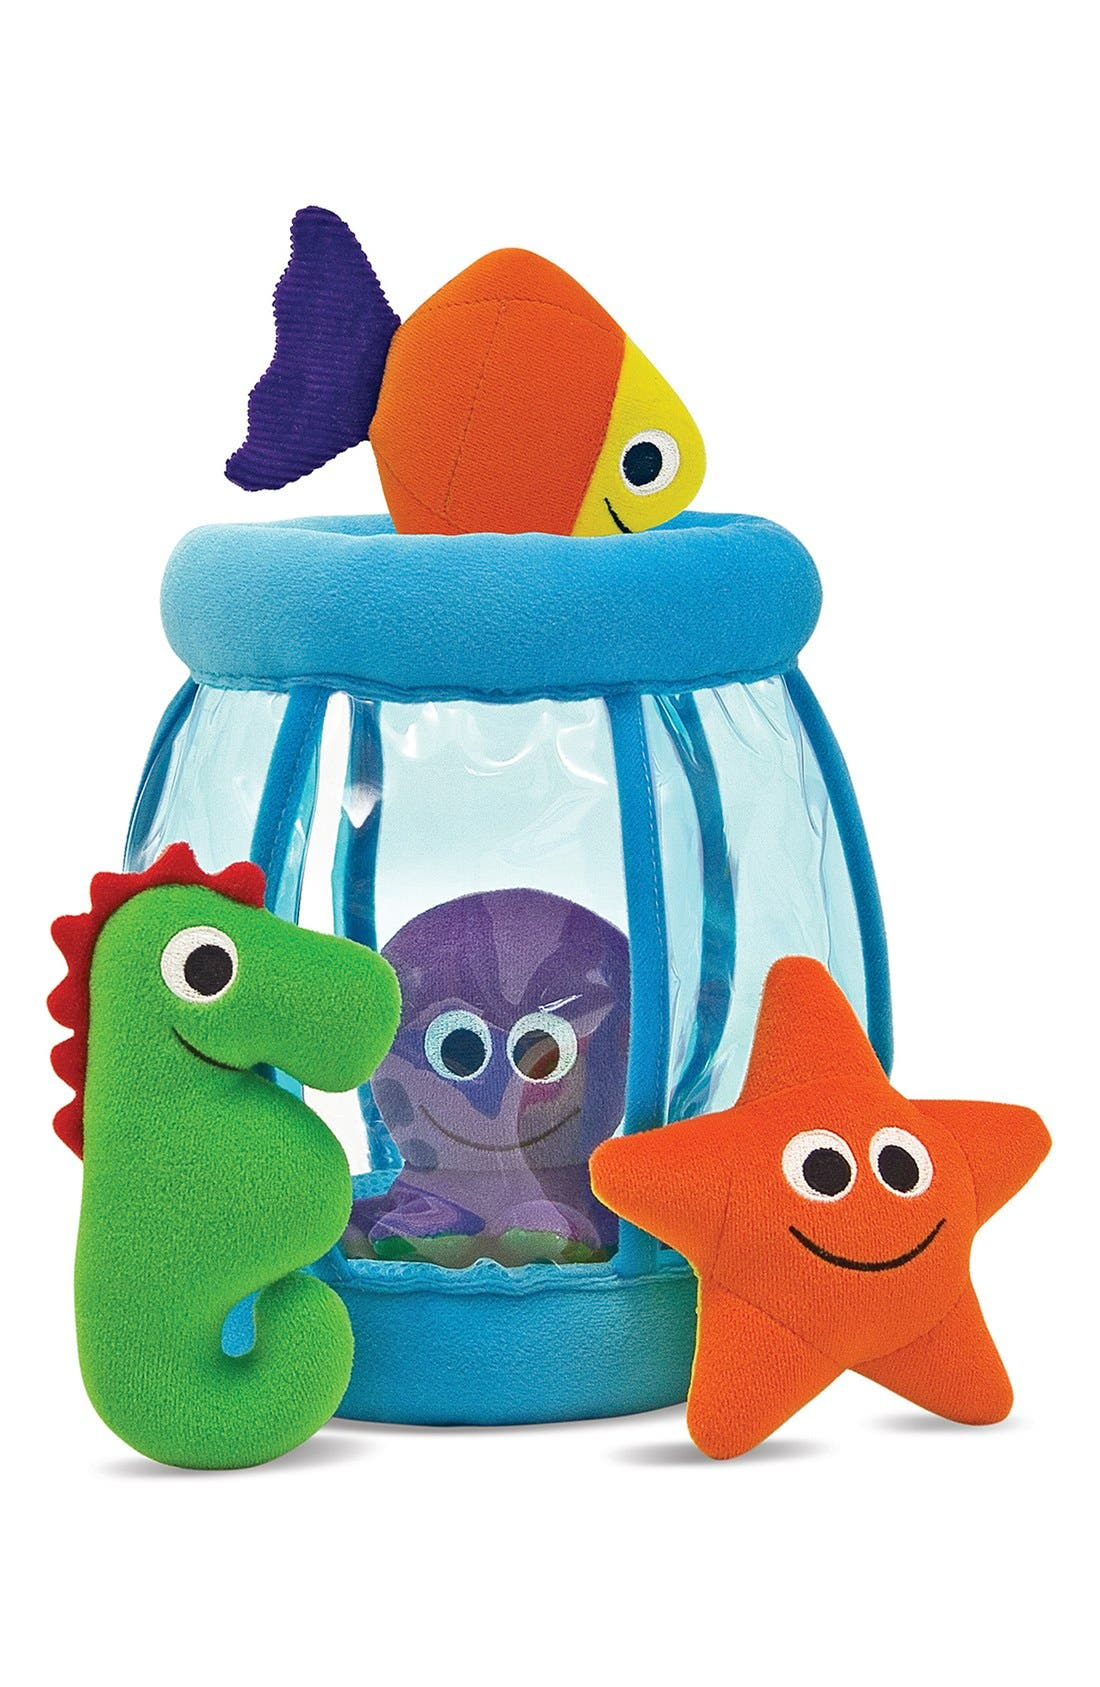 'Fishbowl Fill & Spill' Game,                         Main,                         color, Multi